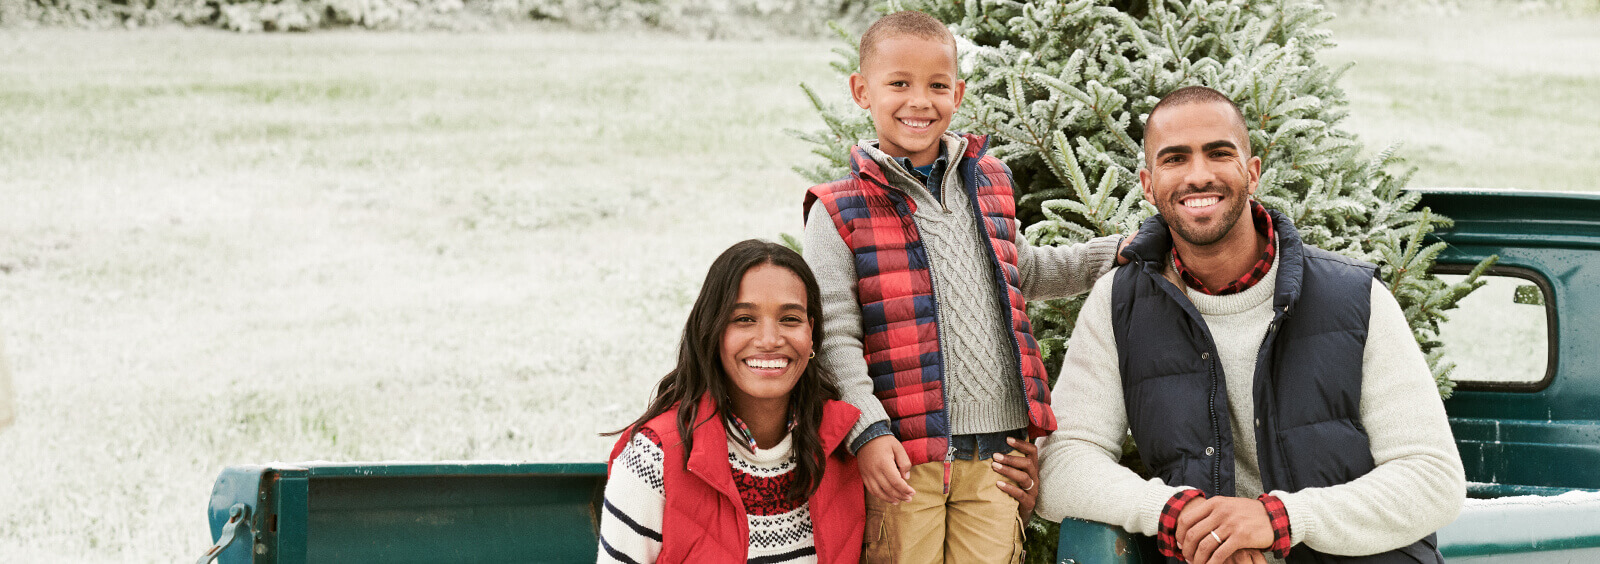 Lands' End Vacation Tips: Tips for a great family vacation with your kids